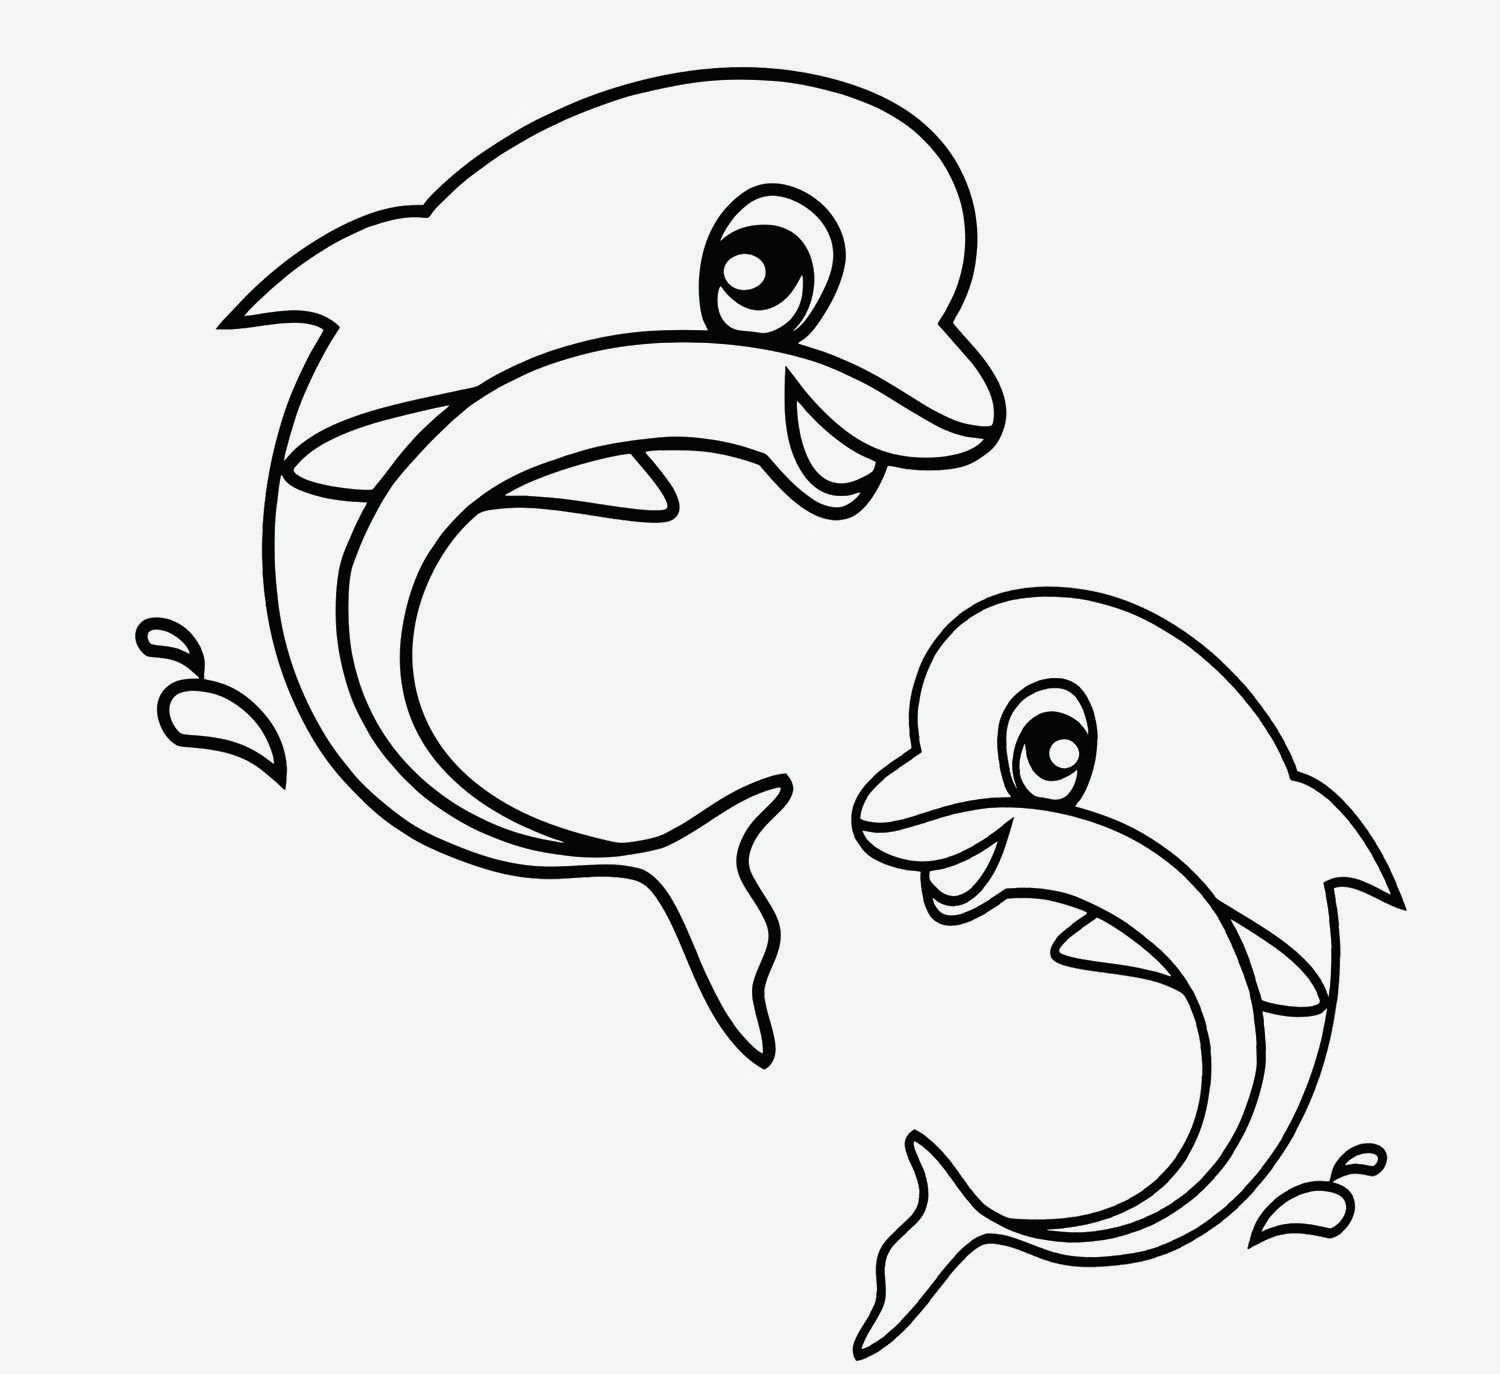 1500x1374 Dolphin Coloring Pages For Kids